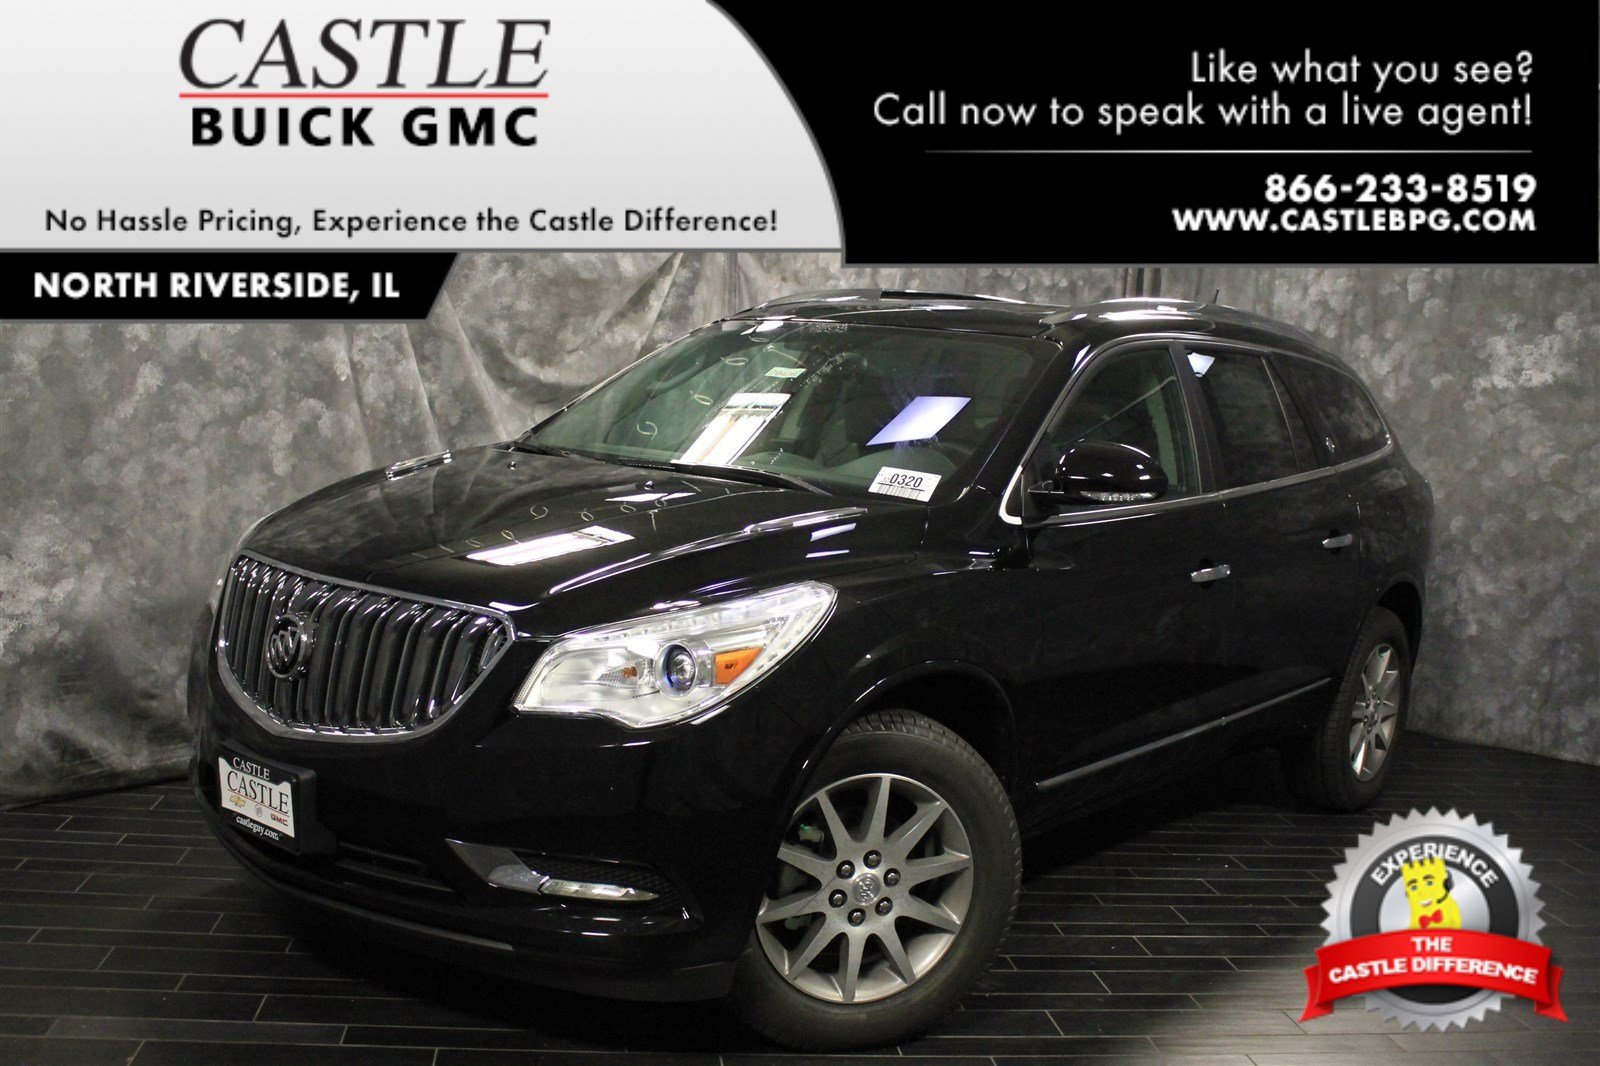 Riverside Buick Enclave >> New 2017 Buick Enclave Leather Sport Utility in North Riverside #70426 | Castle Buick GMC